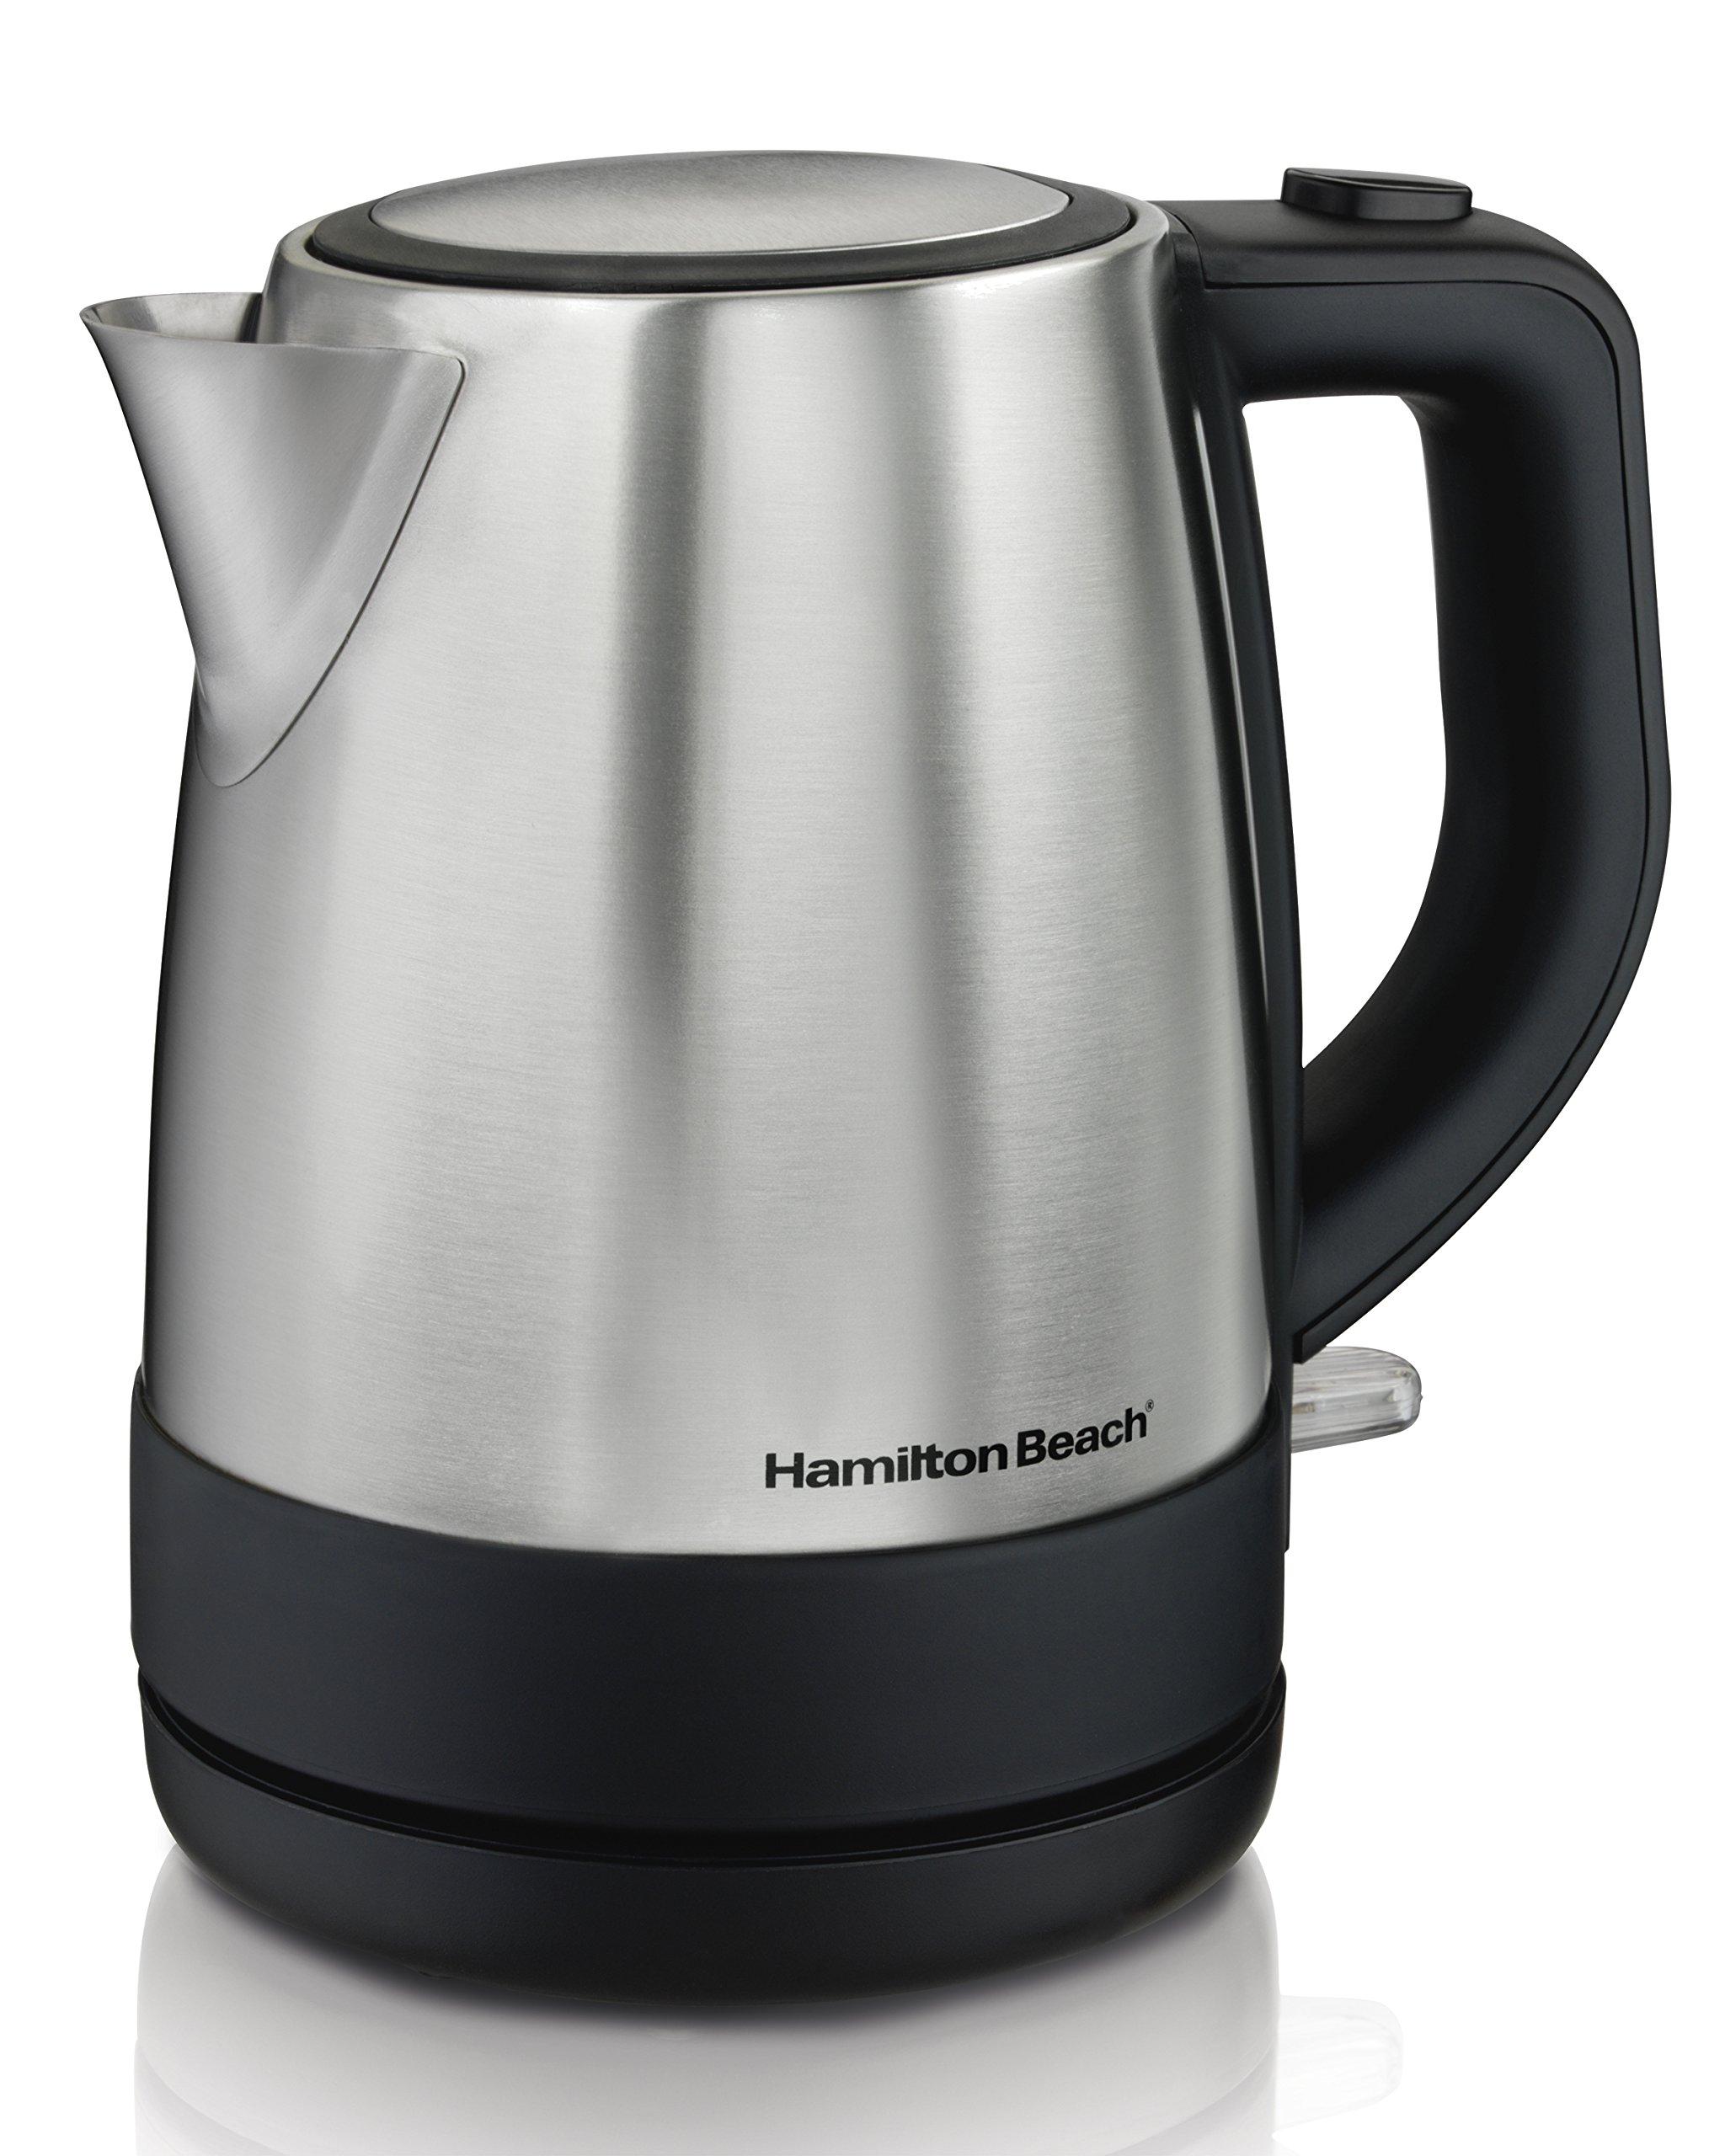 Hamilton Beach 1 Liter Electric Kettle For Tea And Hot Water, Cordless, Auto-Shutoff And Boil-Dry Protection, Stainless Steel (40998) by Hamilton Beach